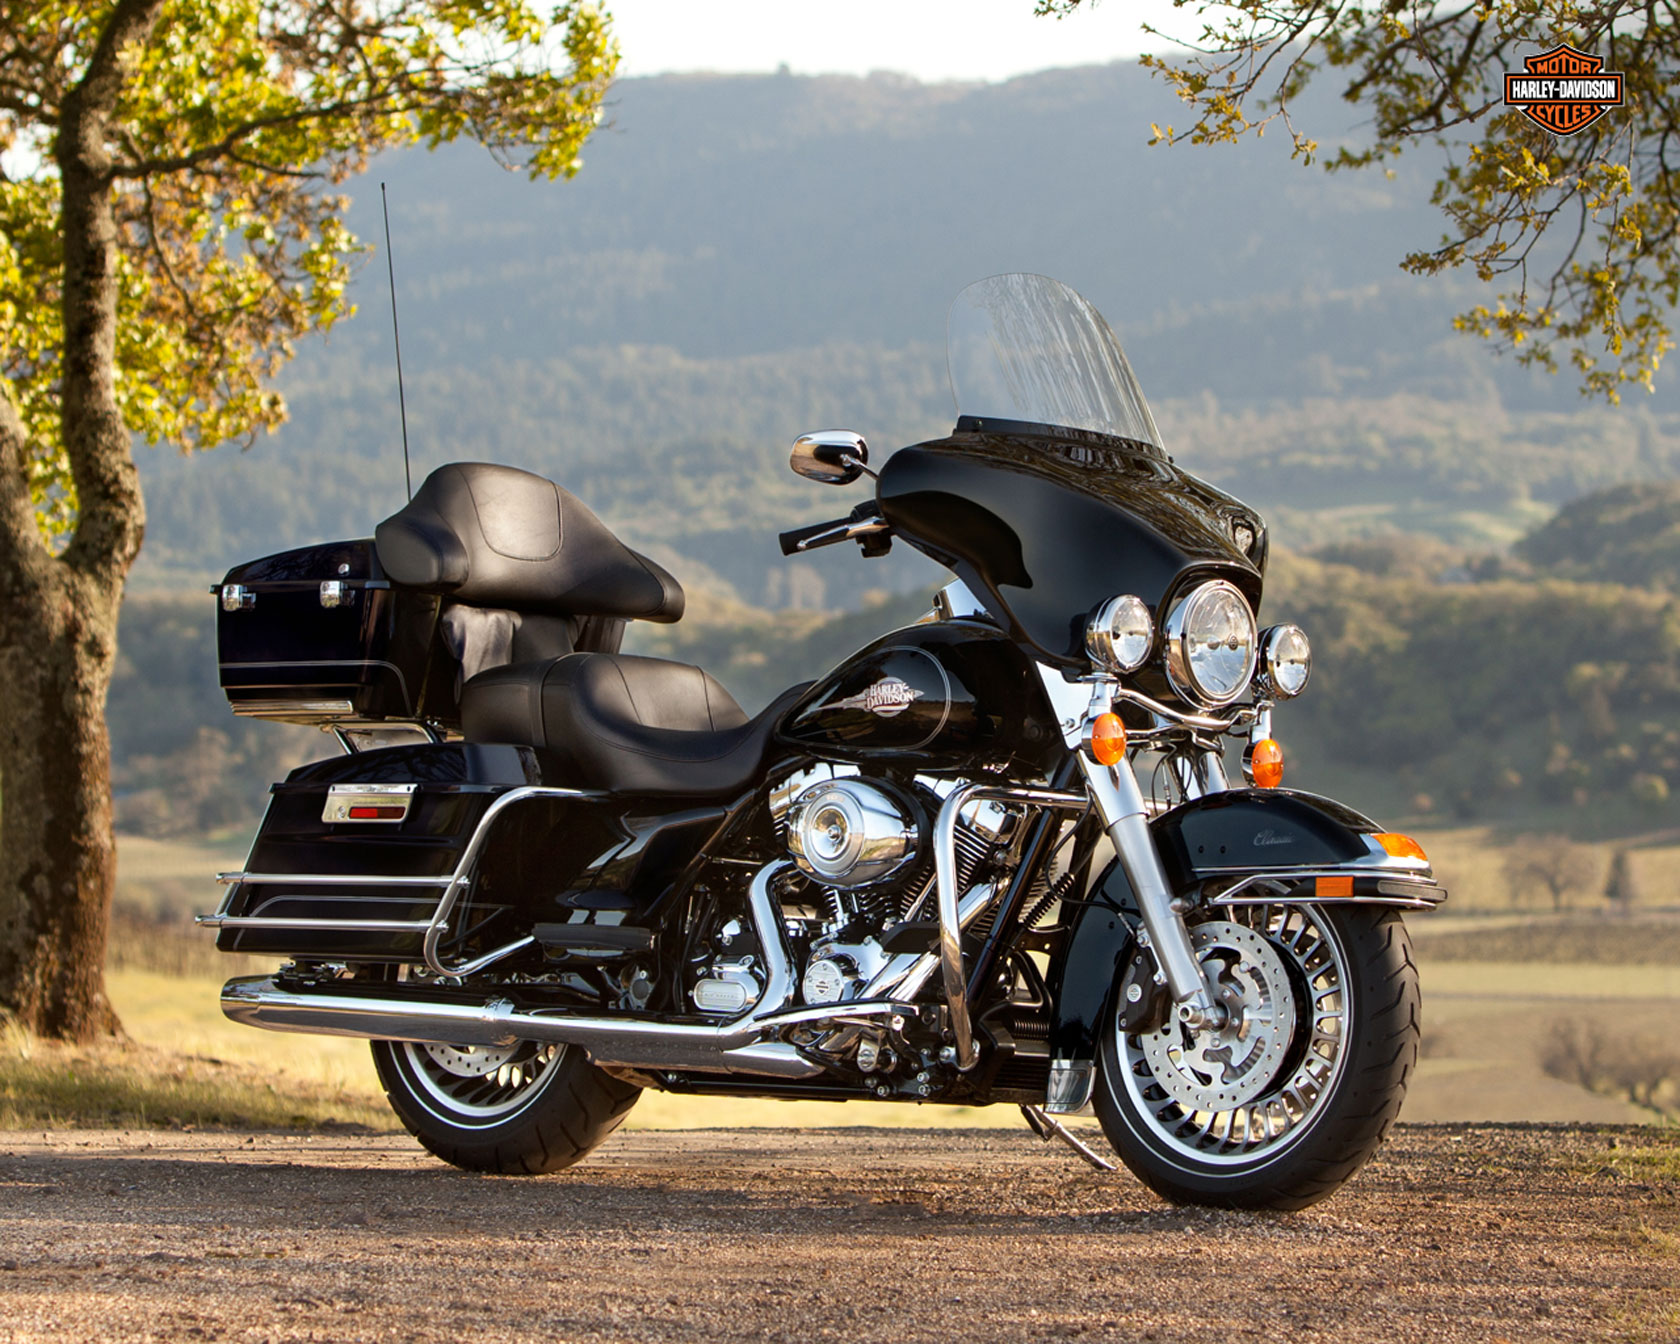 Harley Davidson Electra Glide Classic Review